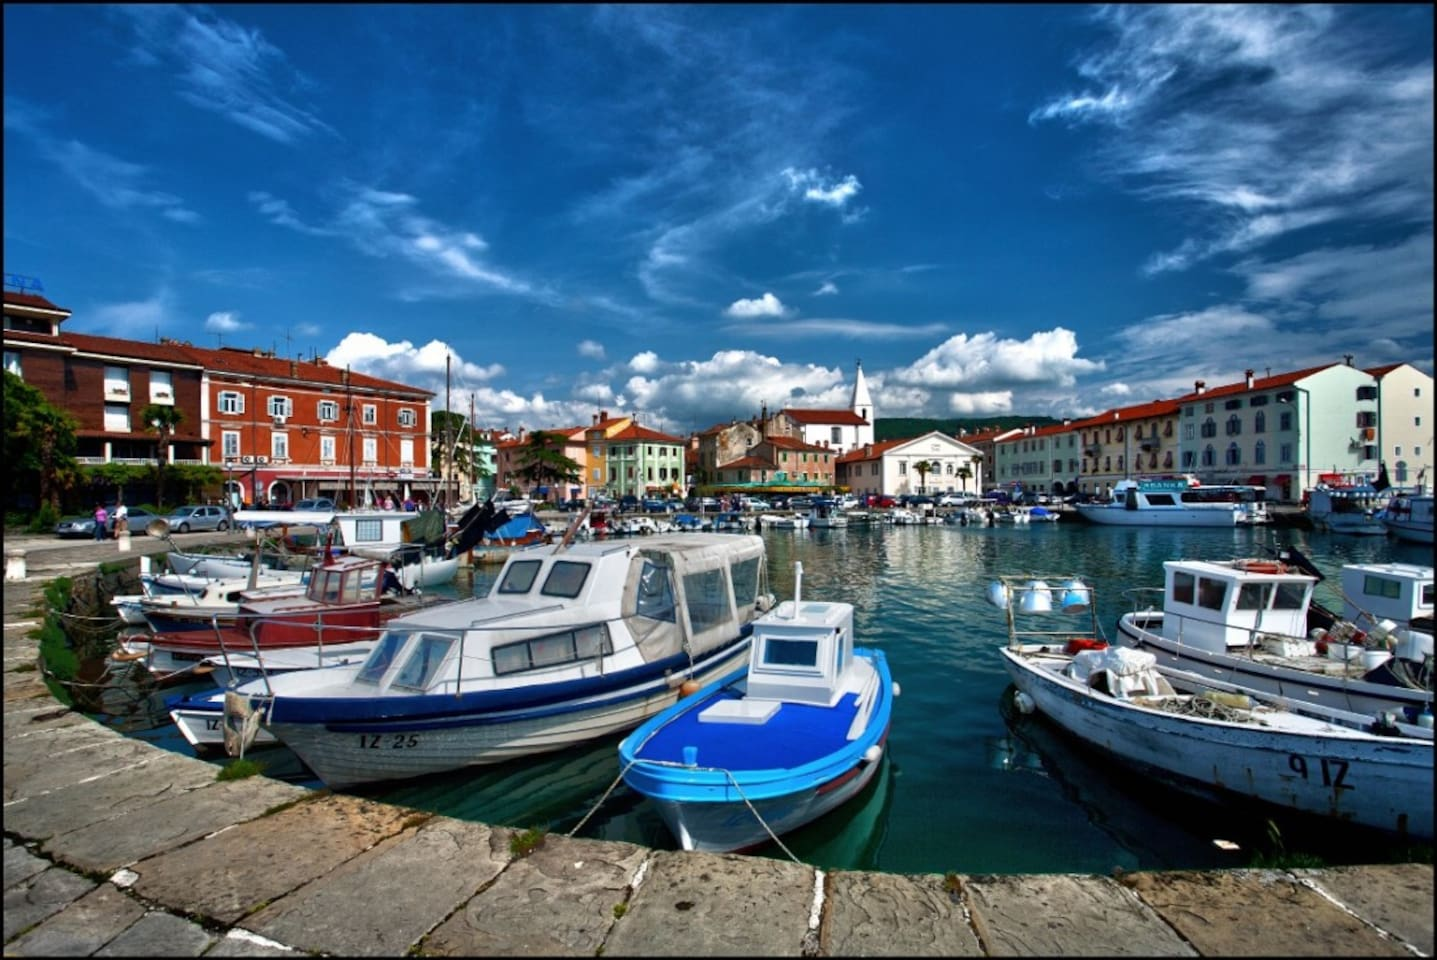 The old Mediterranean town of Izola lies on the south-west shore of the Gulf of Trieste, where the genuine traditions of fishing and winemaking, mysterious traces of the past, and the welcoming character of the locals merge together to form an unforgettab